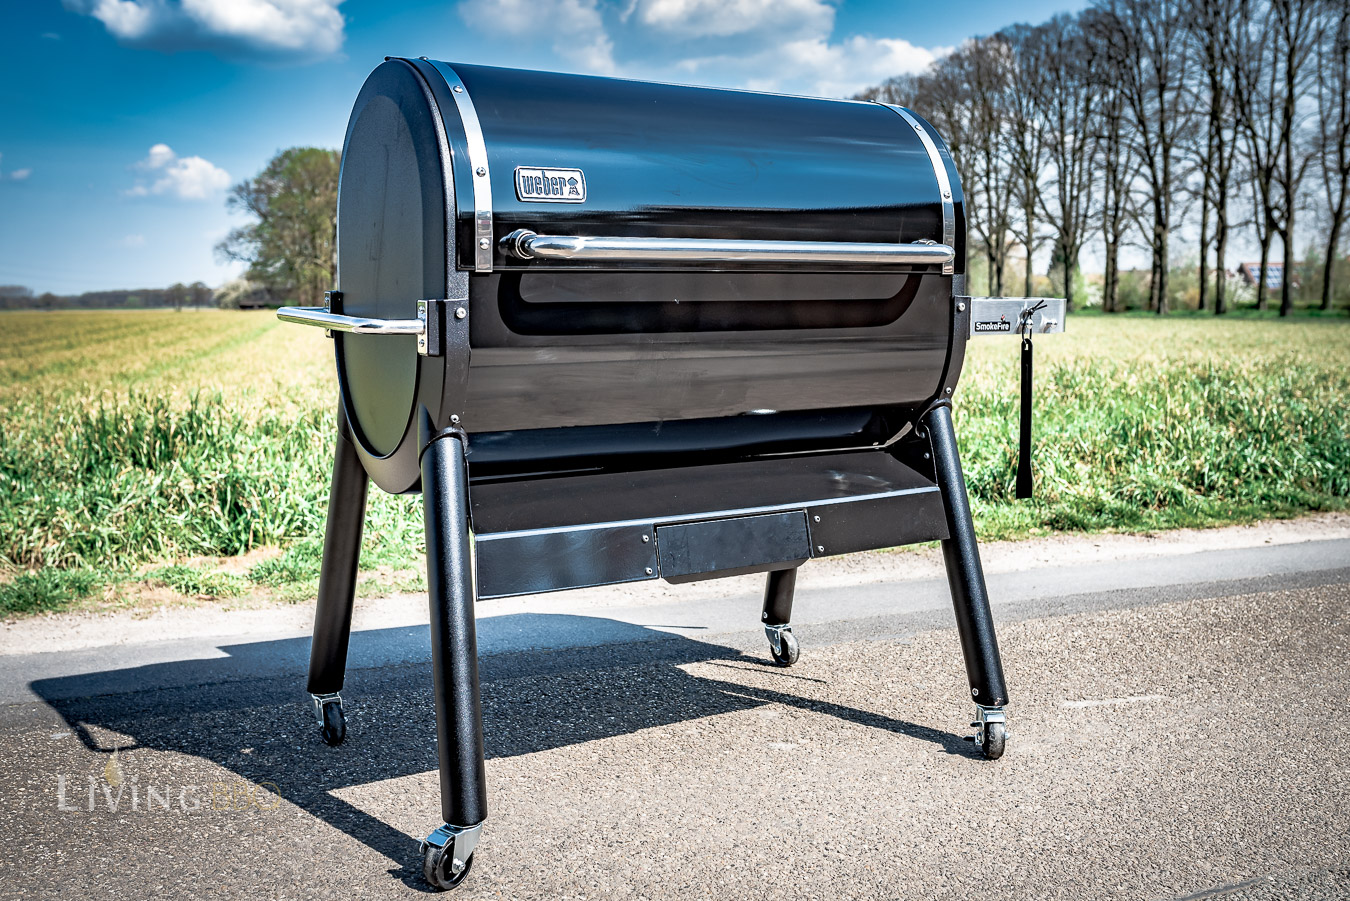 Weber Smokefire EX6 Pelletgrill